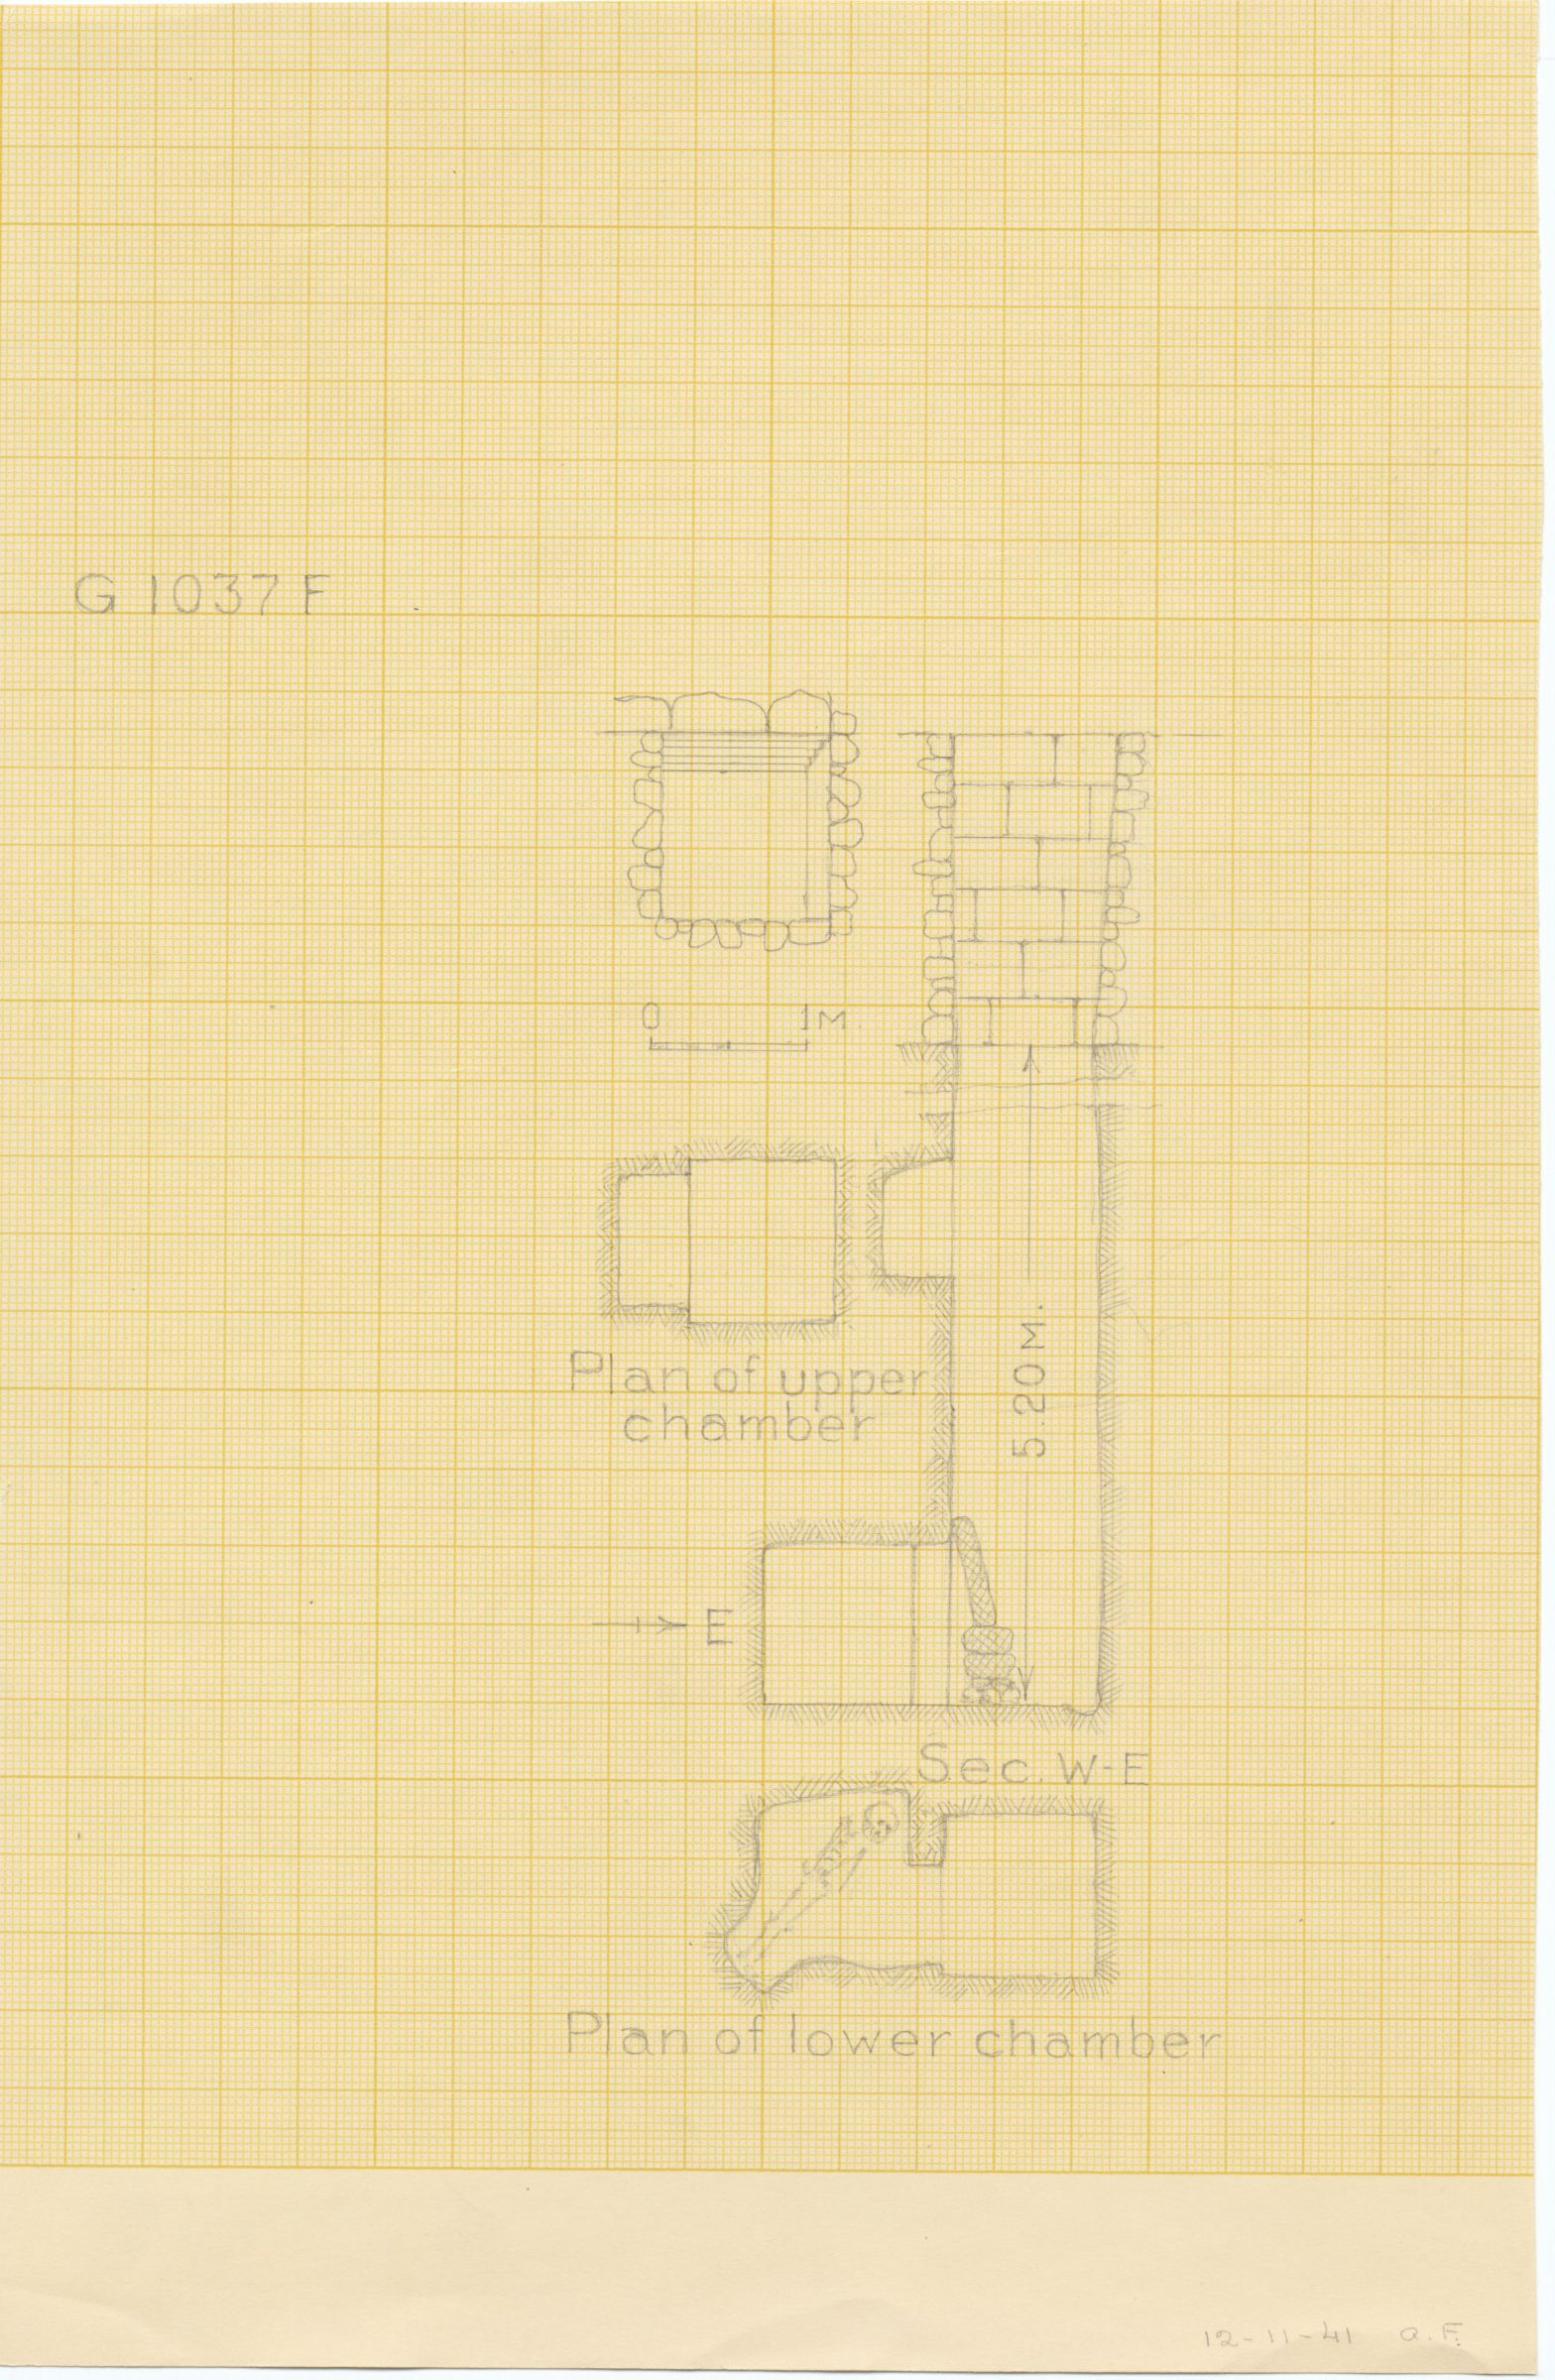 Maps and plans: G 1037-Annex, Shaft F